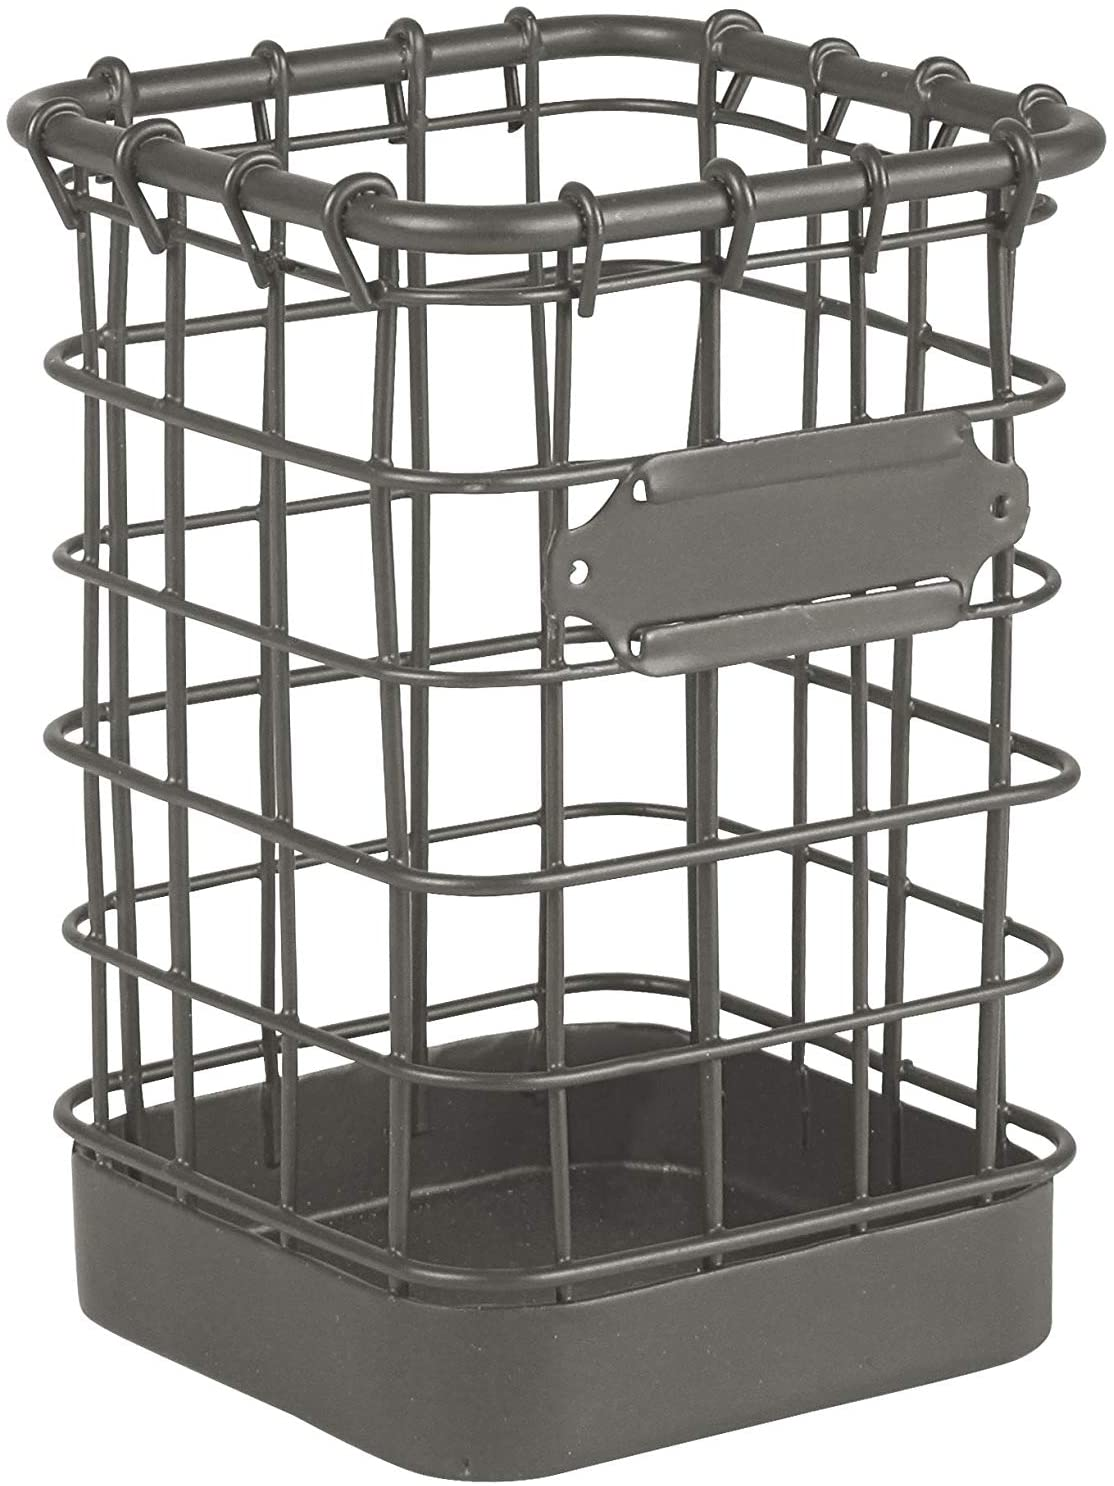 Spectrum Diversified Vintage Pencil & Utility Cup Desk Accessory Organizer, Industrial Gray